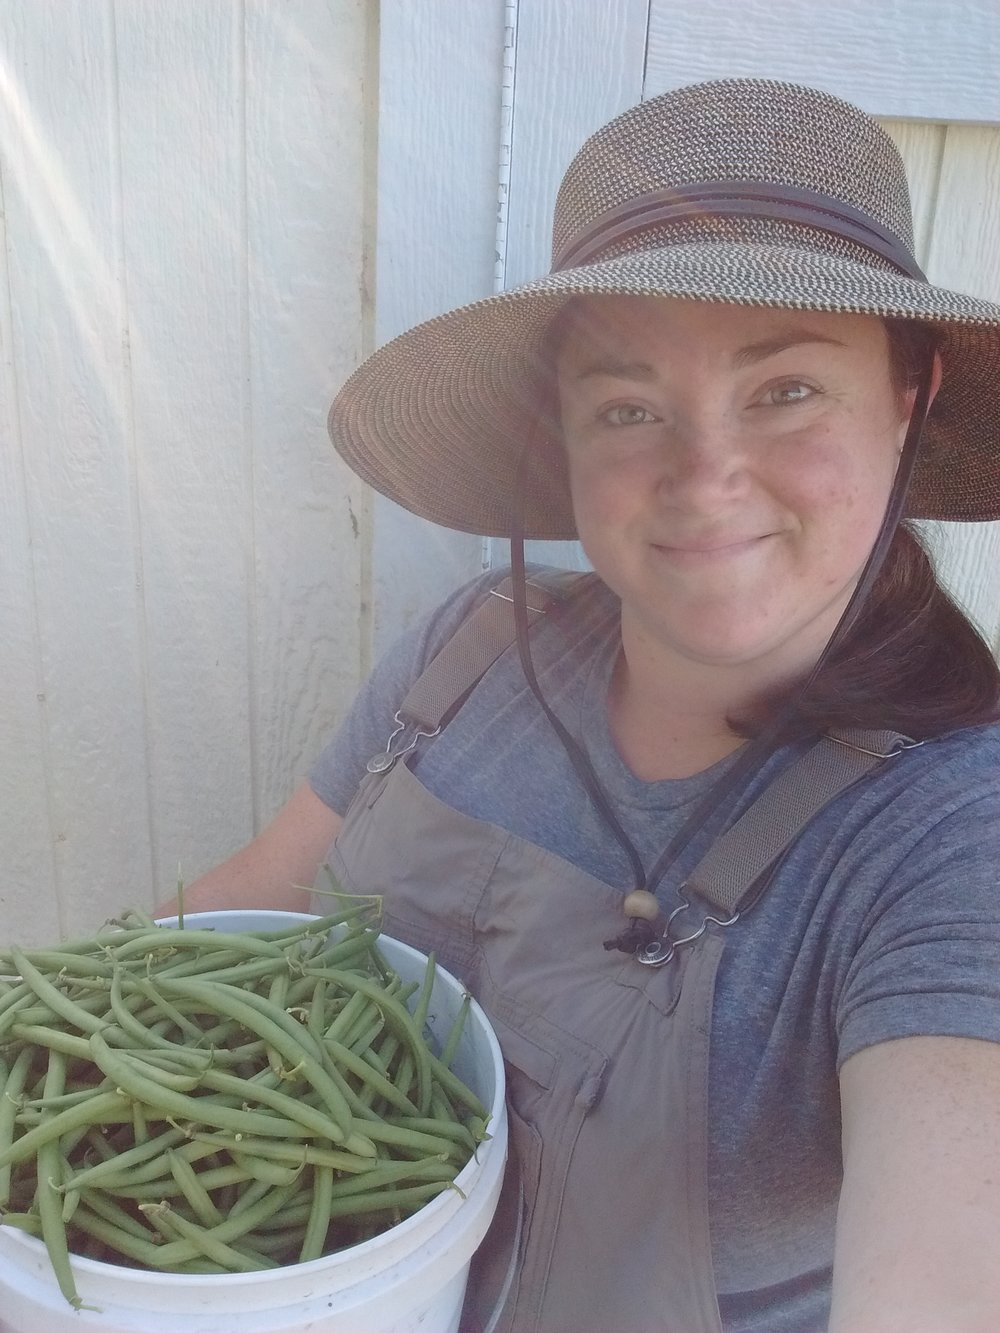 Faren is a part-time Lyft driver and full-time leader in her community's farm to table movement.